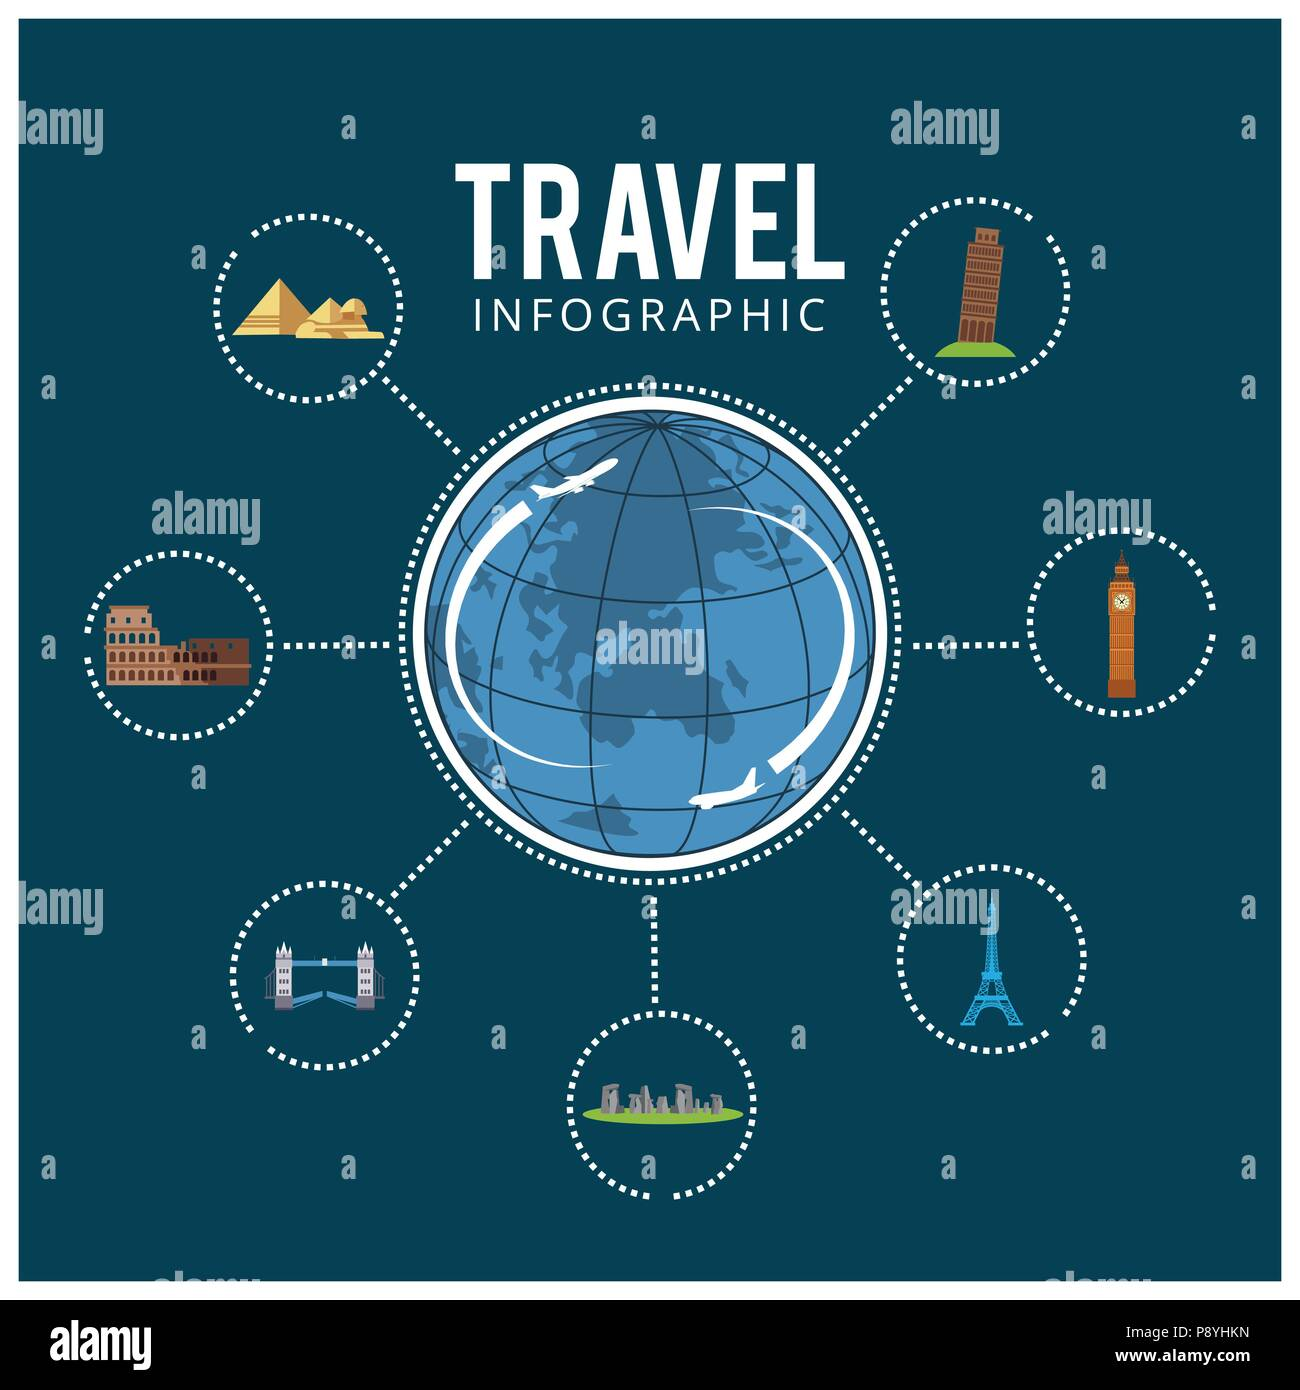 Colourful Travel Travel And Tourism Background And Infographic For Web Design And Application Interface Also Useful For Infographics Vector Illust Stock Vector Image Art Alamy